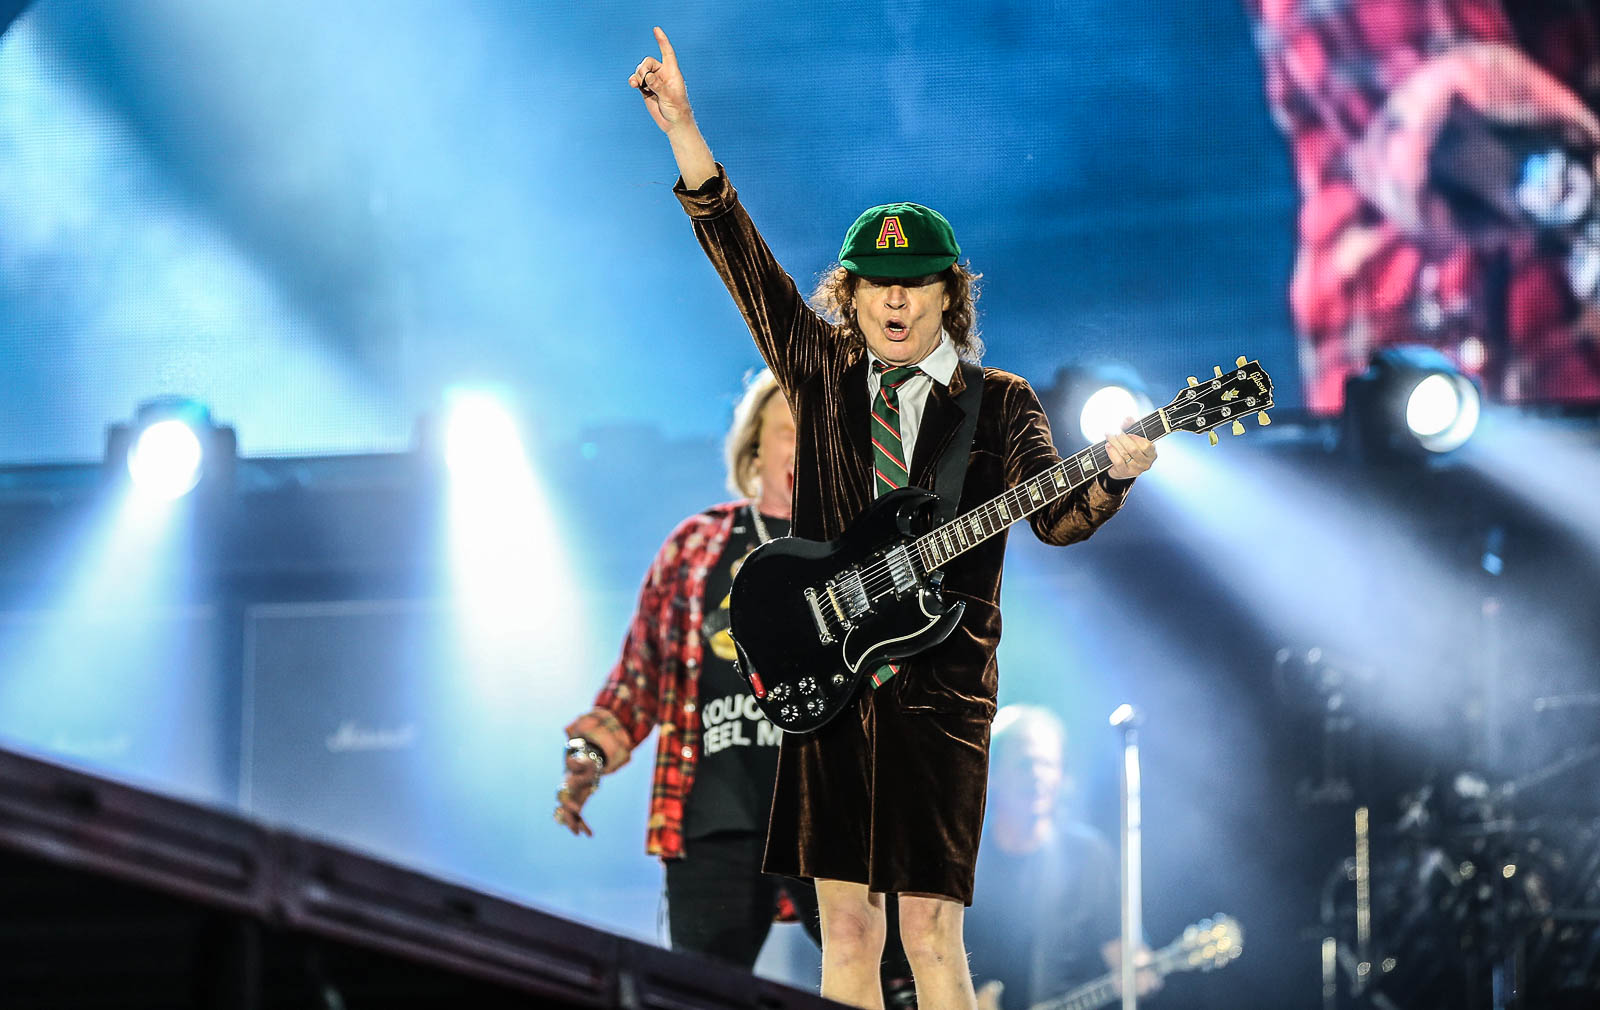 Angus young2 ACDC